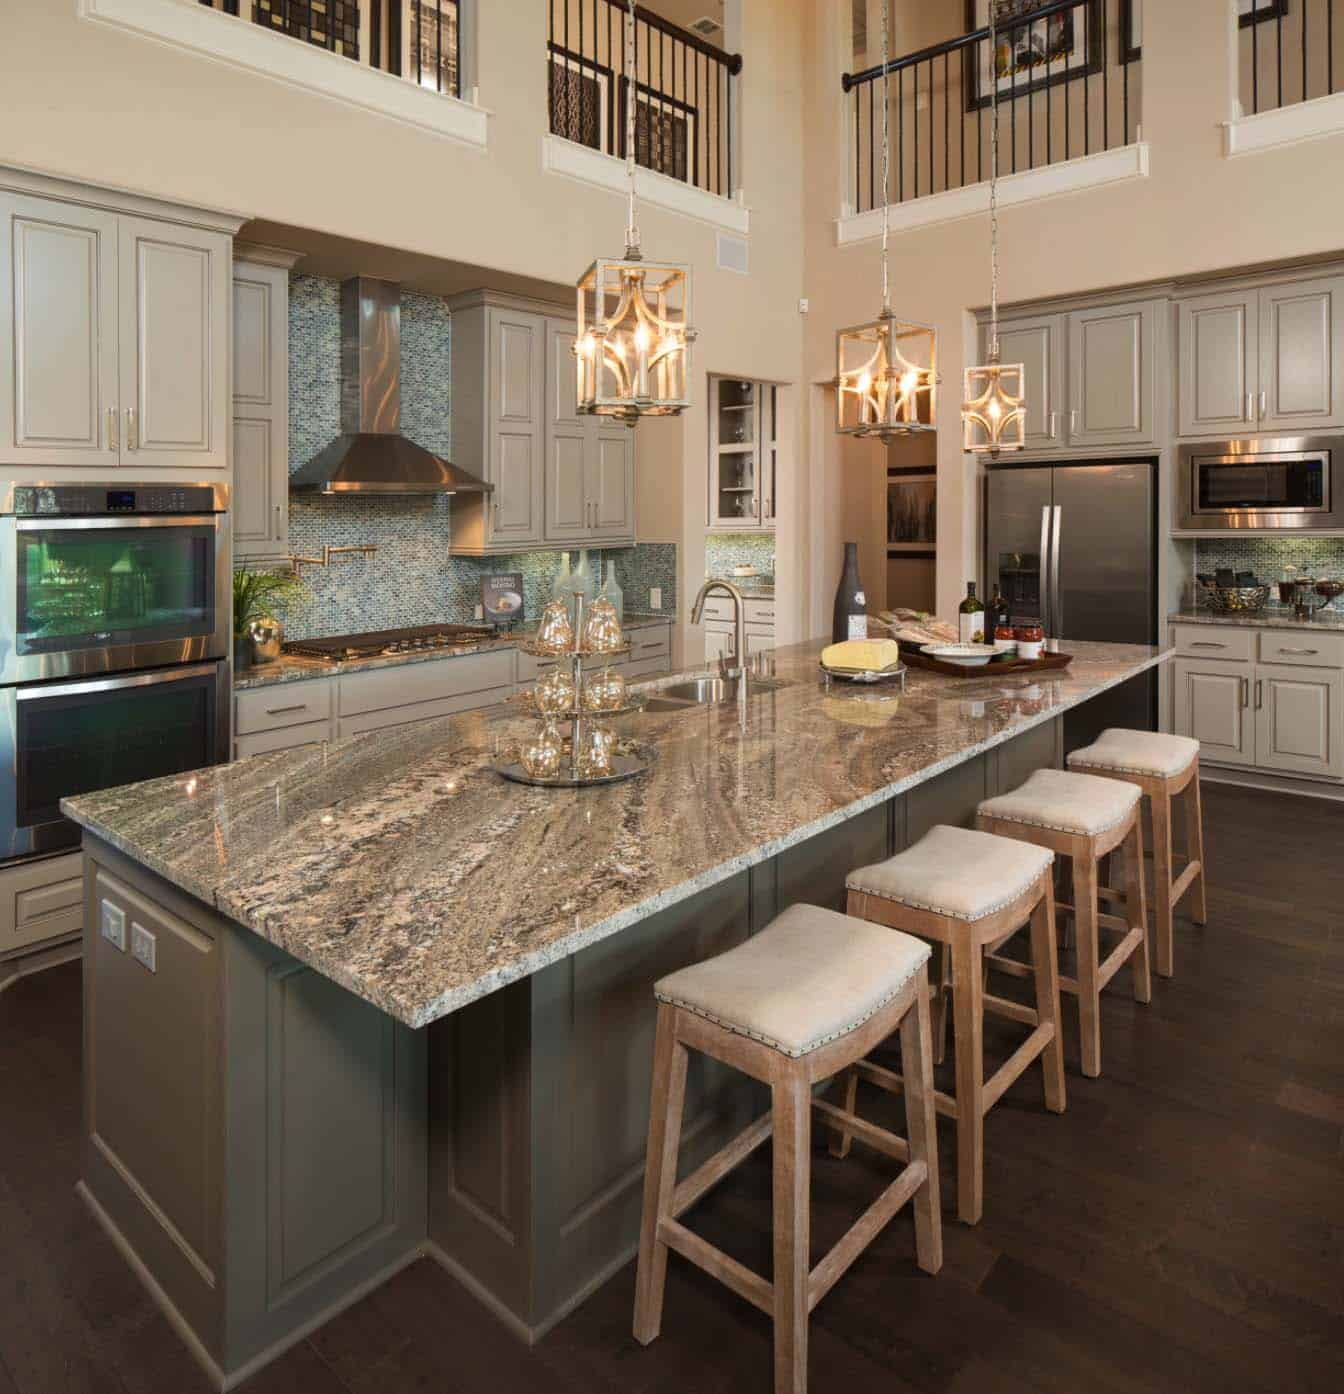 kitchen island options 30 brilliant kitchen island ideas that make a statement 5953